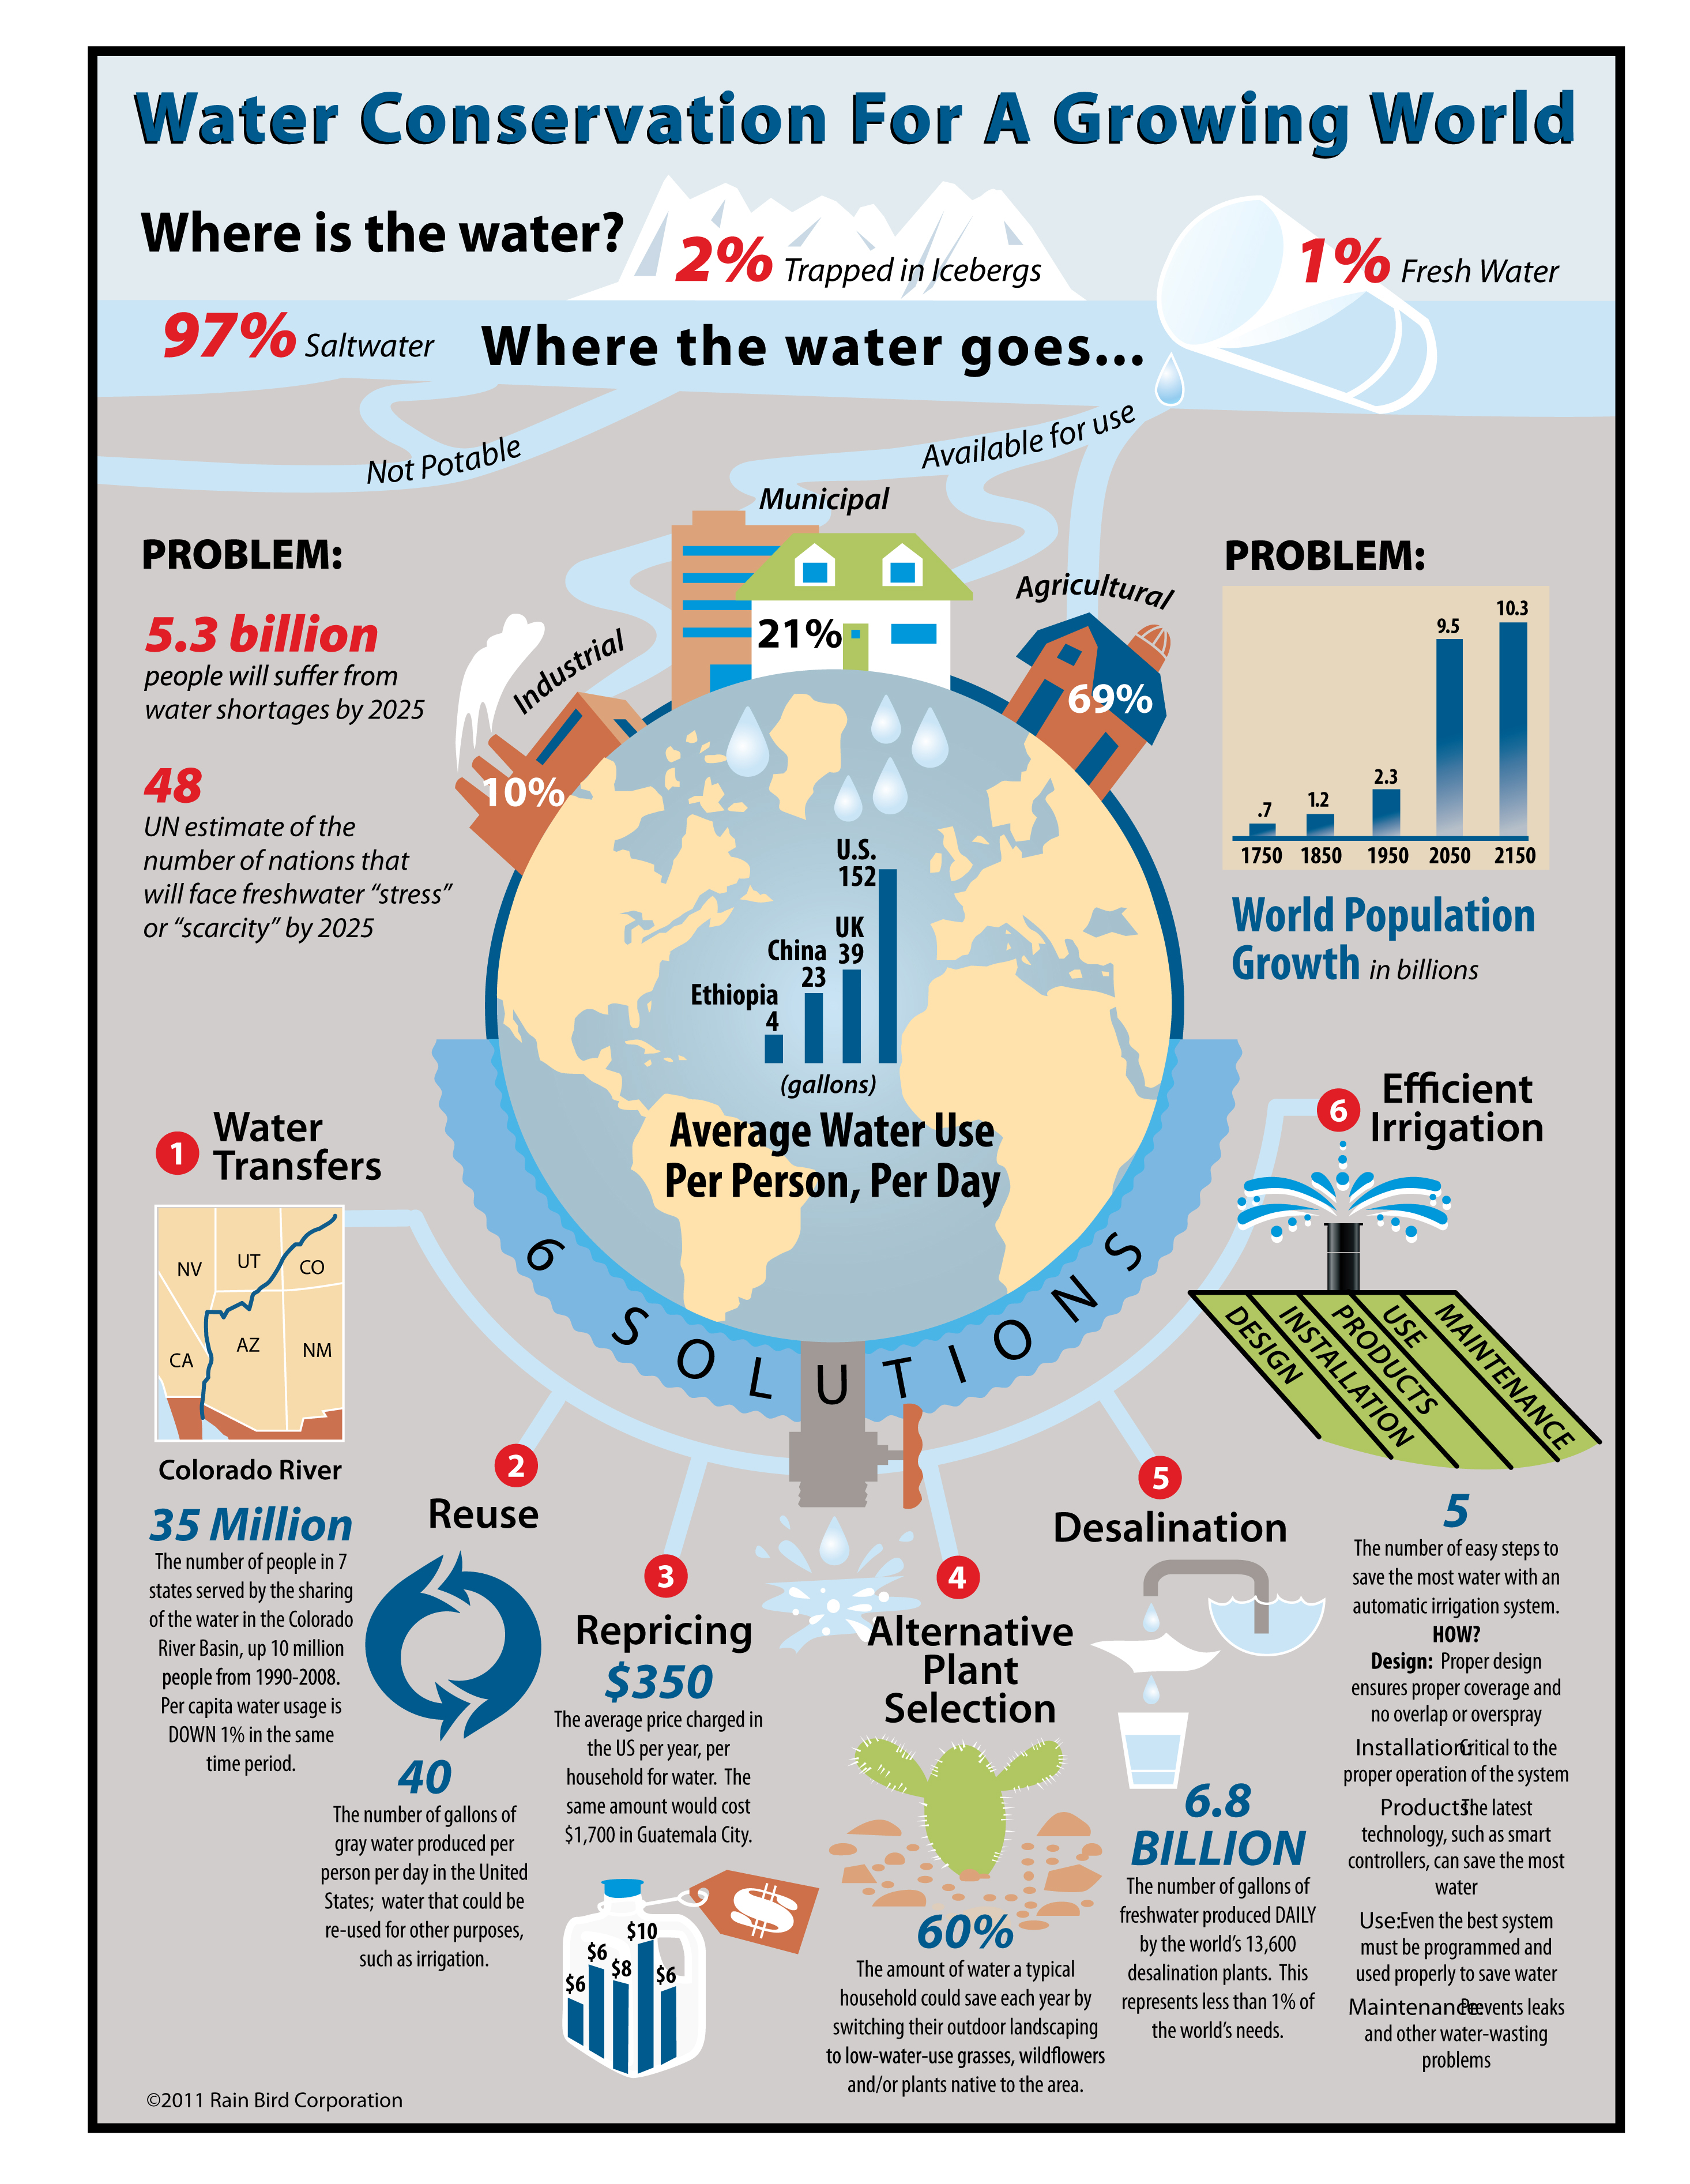 Water Conservation for a Growing World Infographic